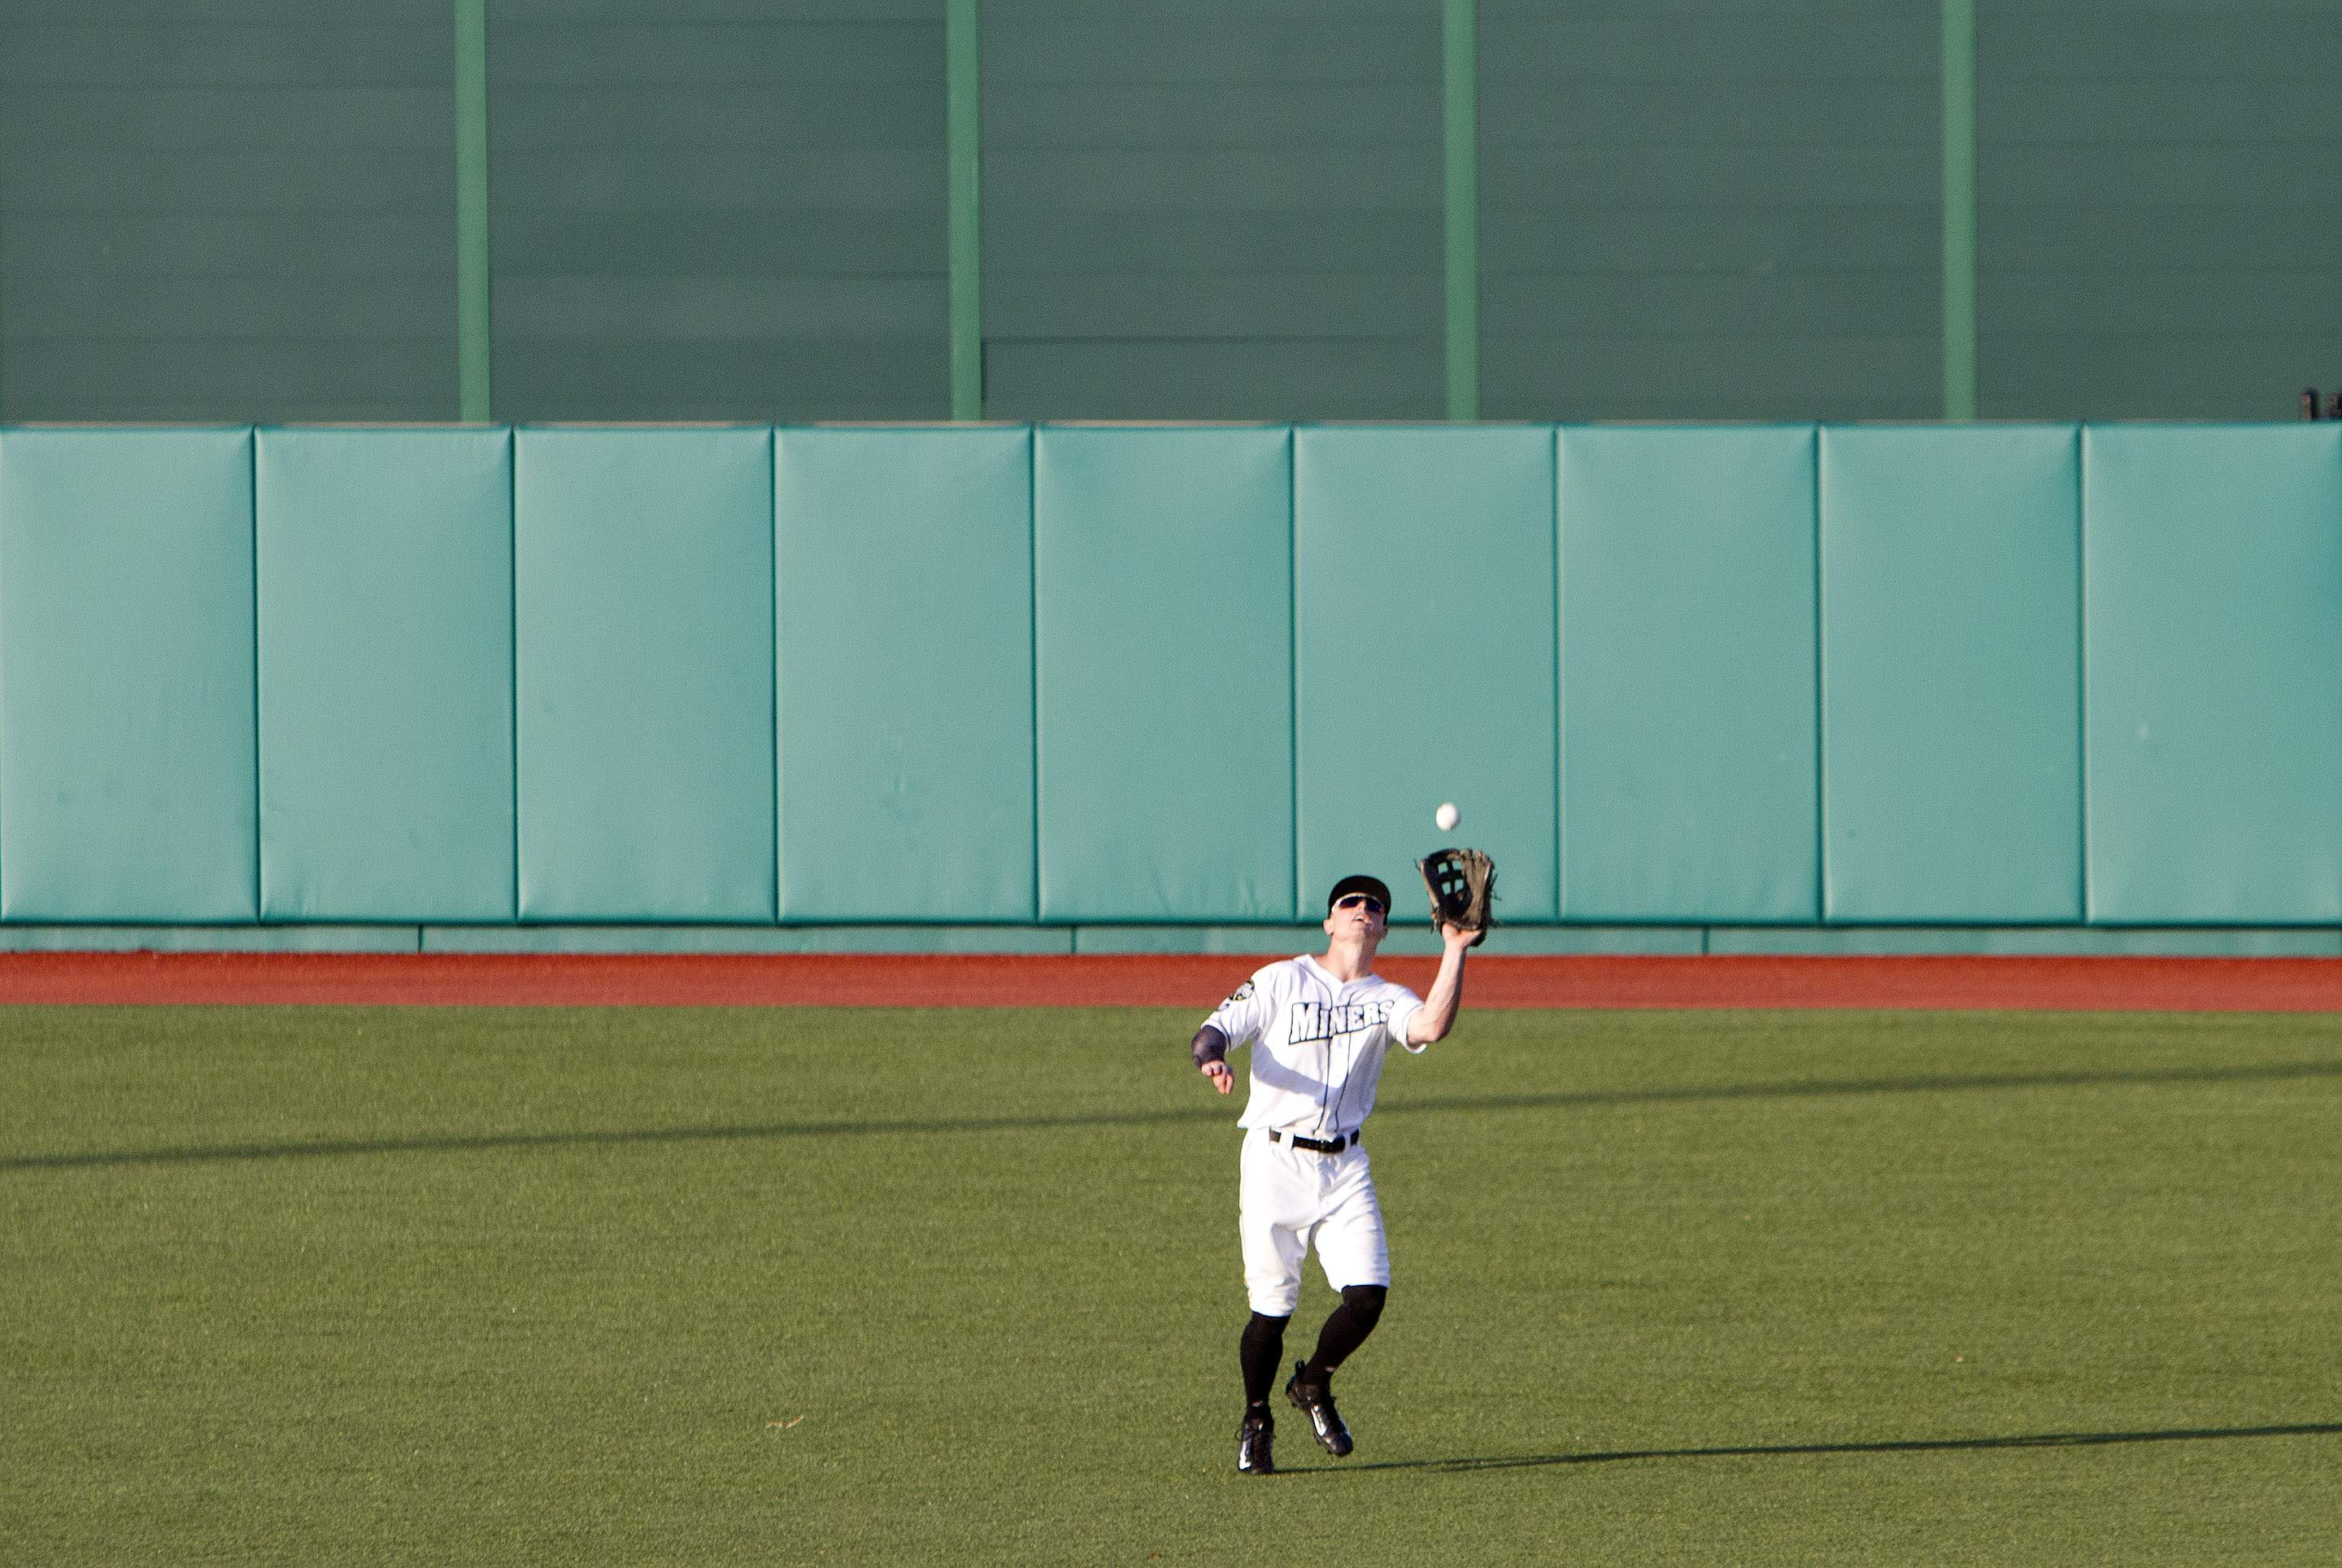 Ryan Sluder makes a catch.